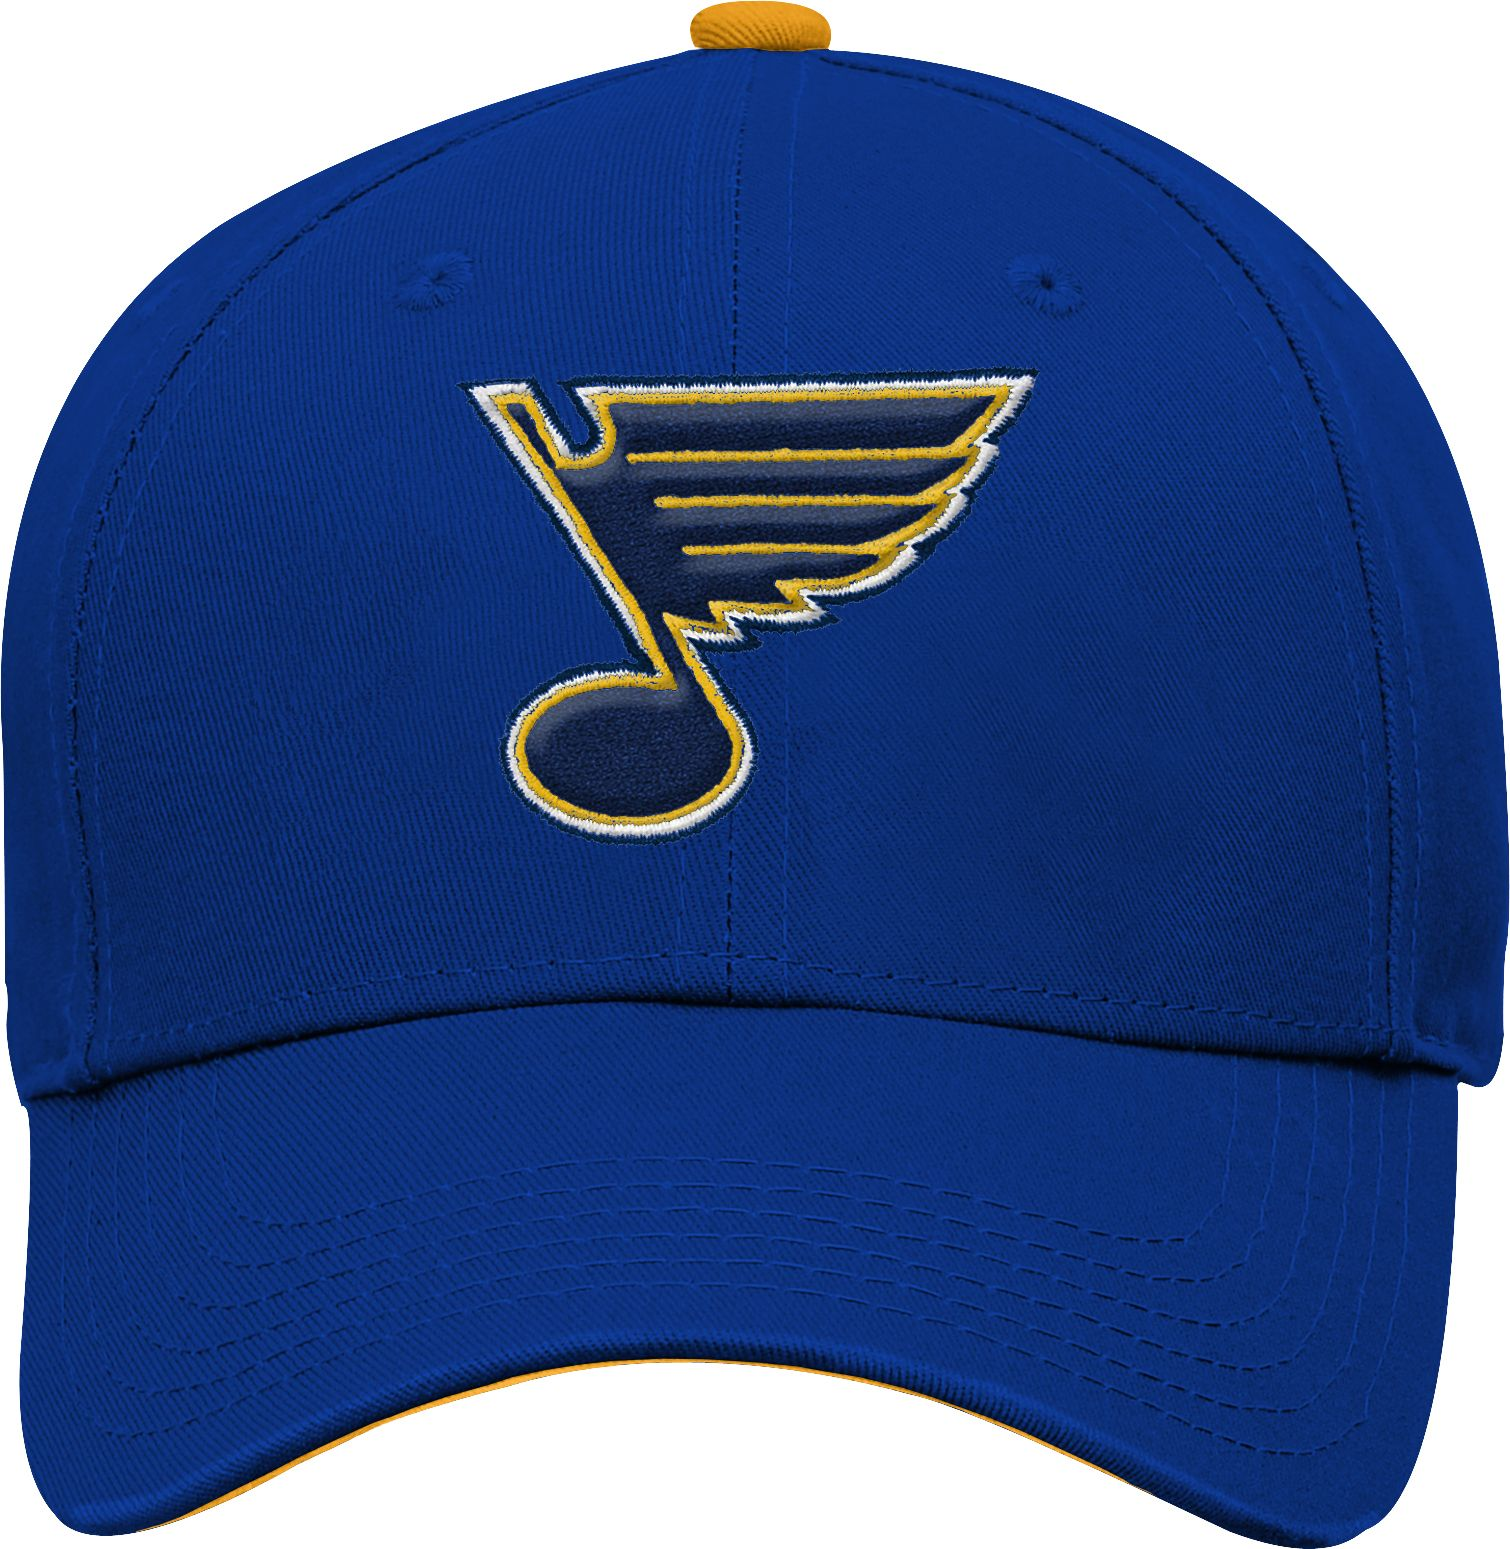 4be0536f6 ... canada netherlands nhl youth st. louis blues basic structured blue  adjustable hat 50333 7a98d d7fa3